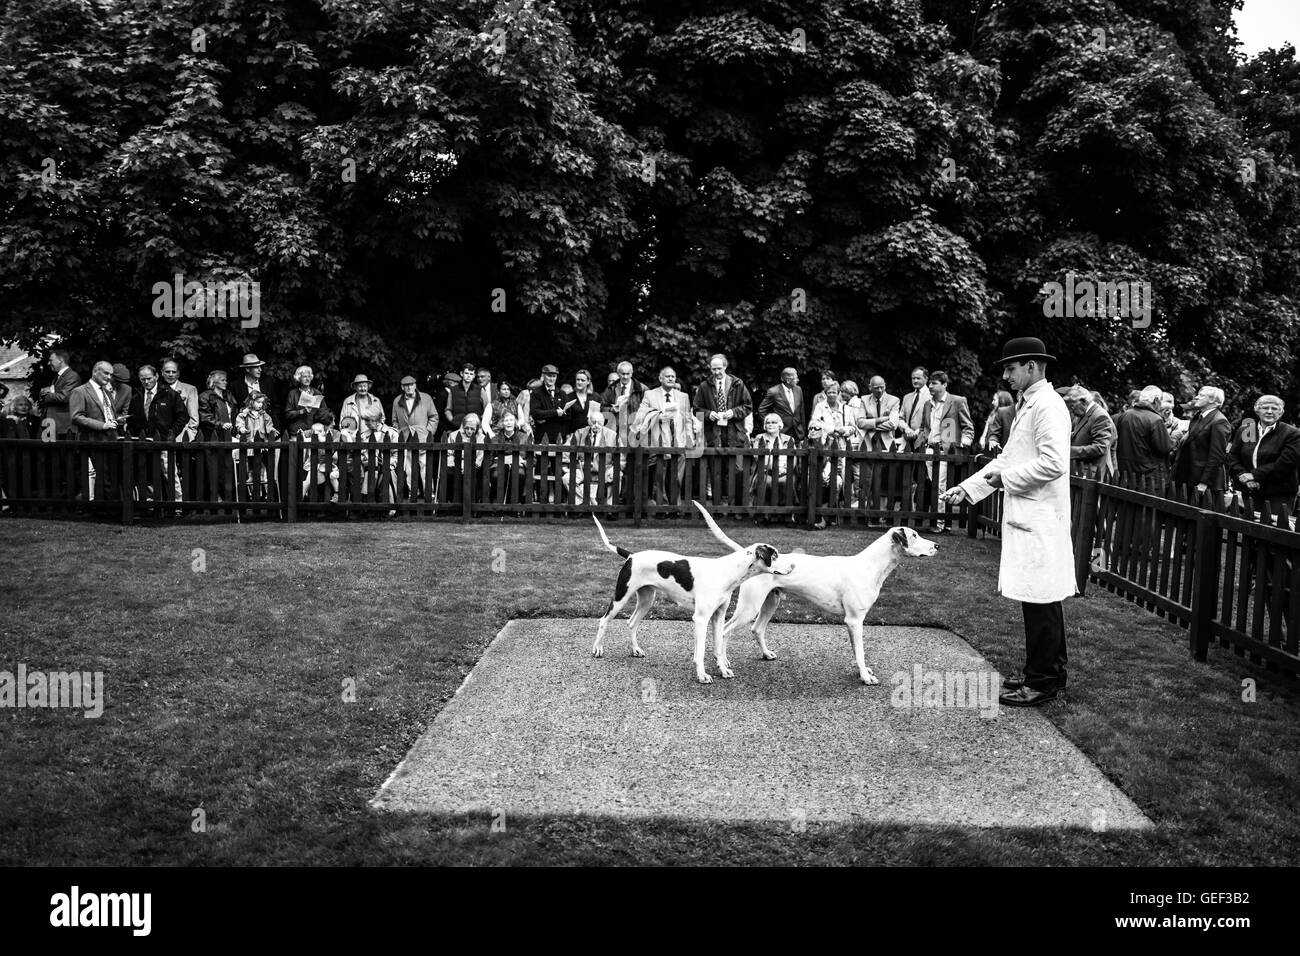 Greenwells, Bowden, Scottish Borders, UK. 24th July 2016. The Duke of Buccleuch Hunt Puppy Show 2016. Stock Photo